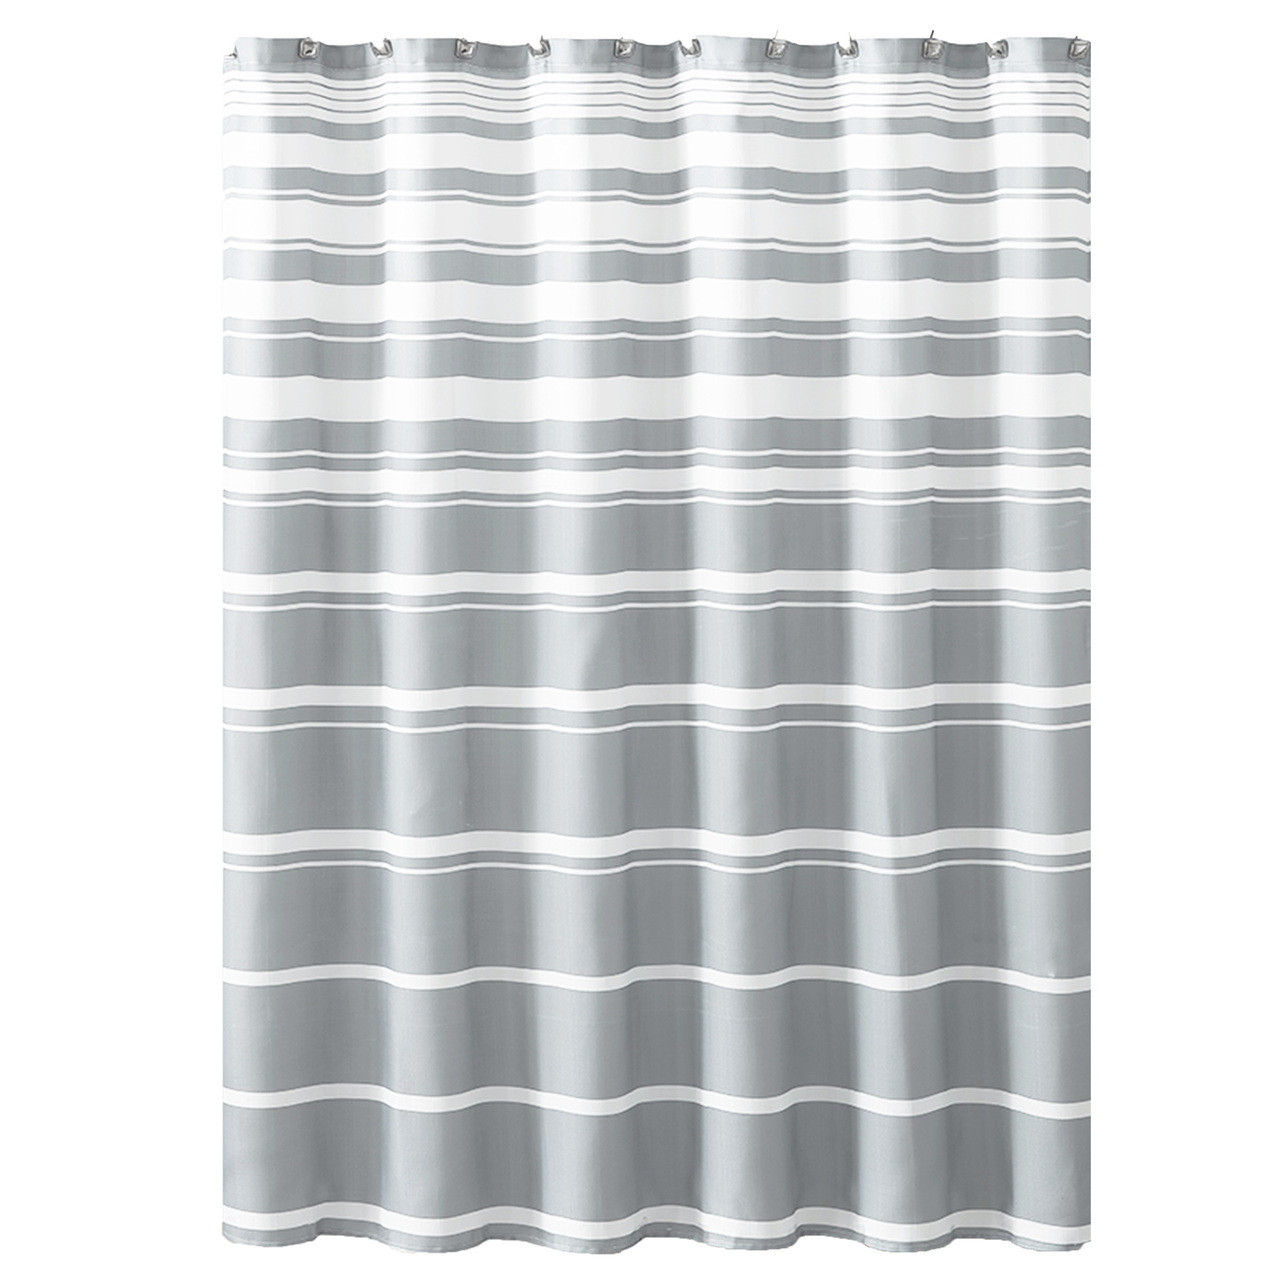 Hudson Essex Grey White Faux Linen Fabric Shower Curtain Variation Horizontal Stripe Design 72 X 72 Inches